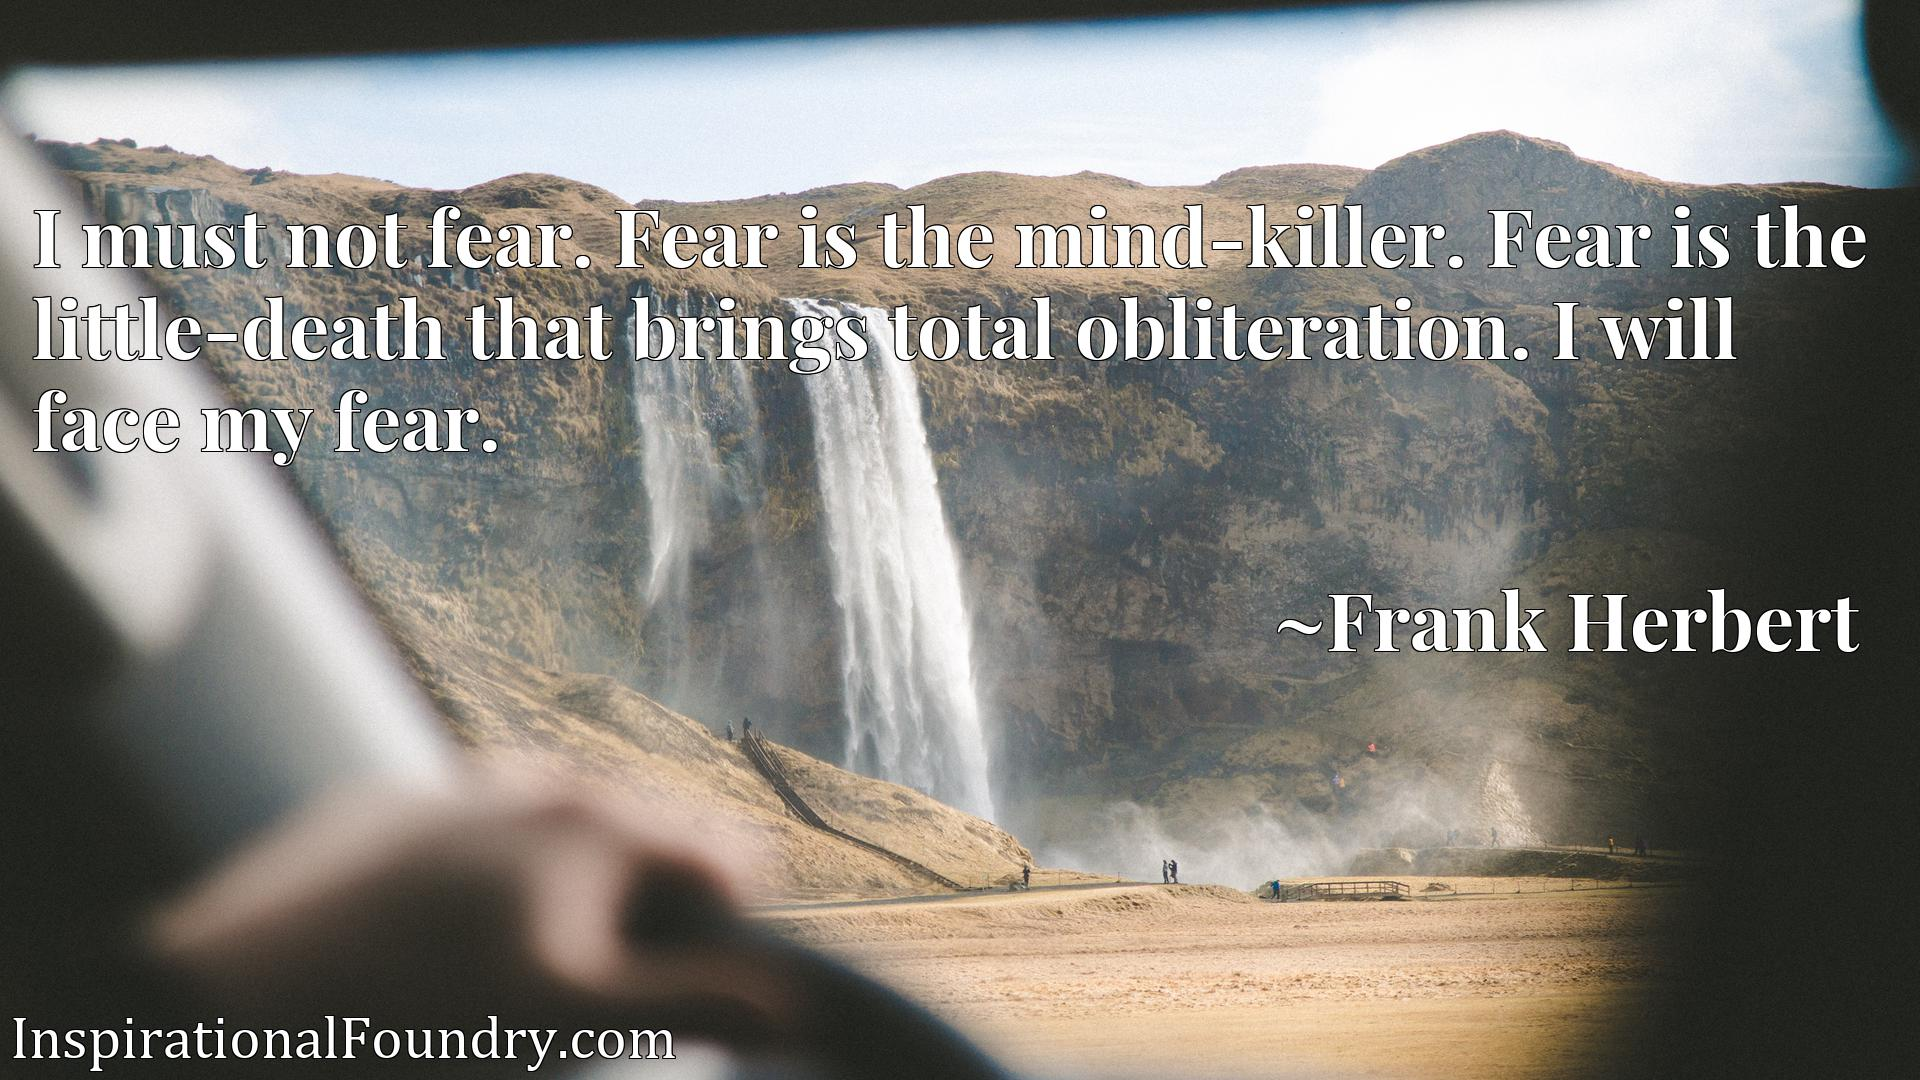 I must not fear. Fear is the mind-killer. Fear is the little-death that brings total obliteration. I will face my fear.